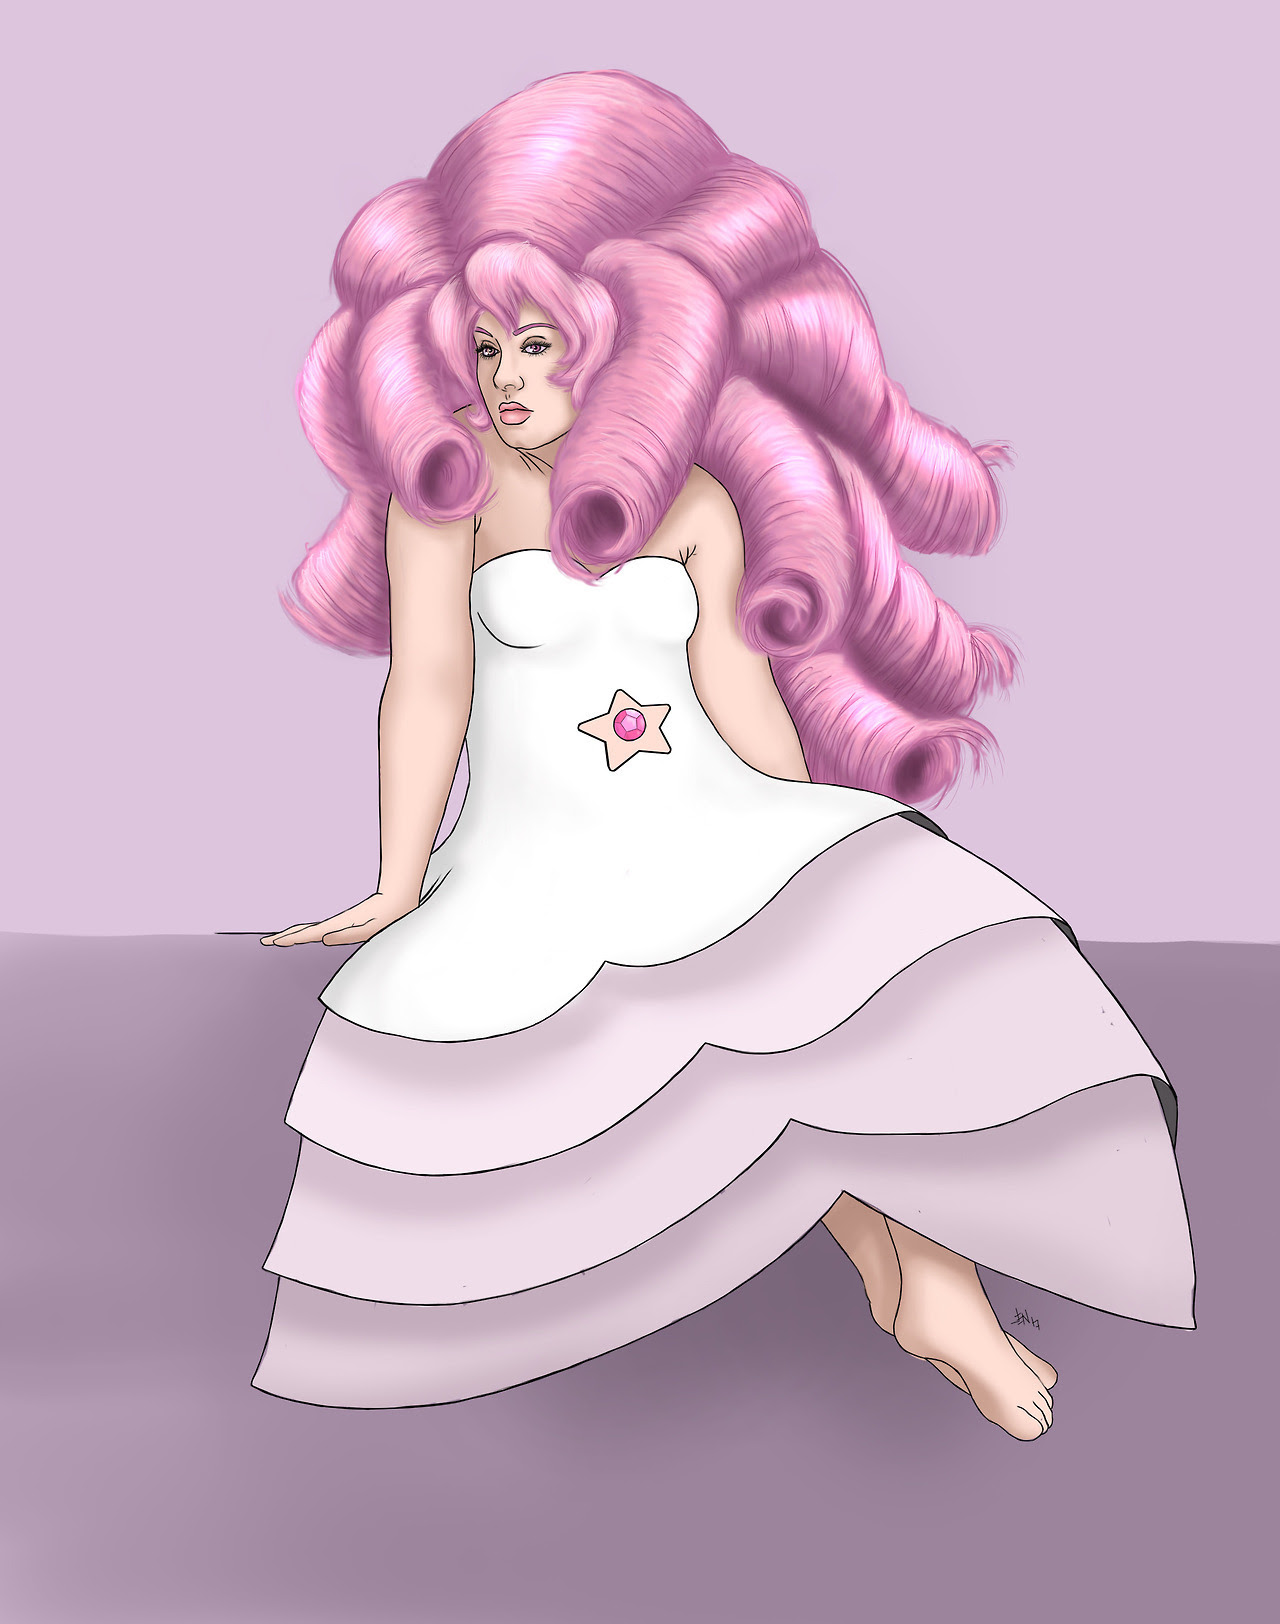 Rose Quartz (My commissions are open)